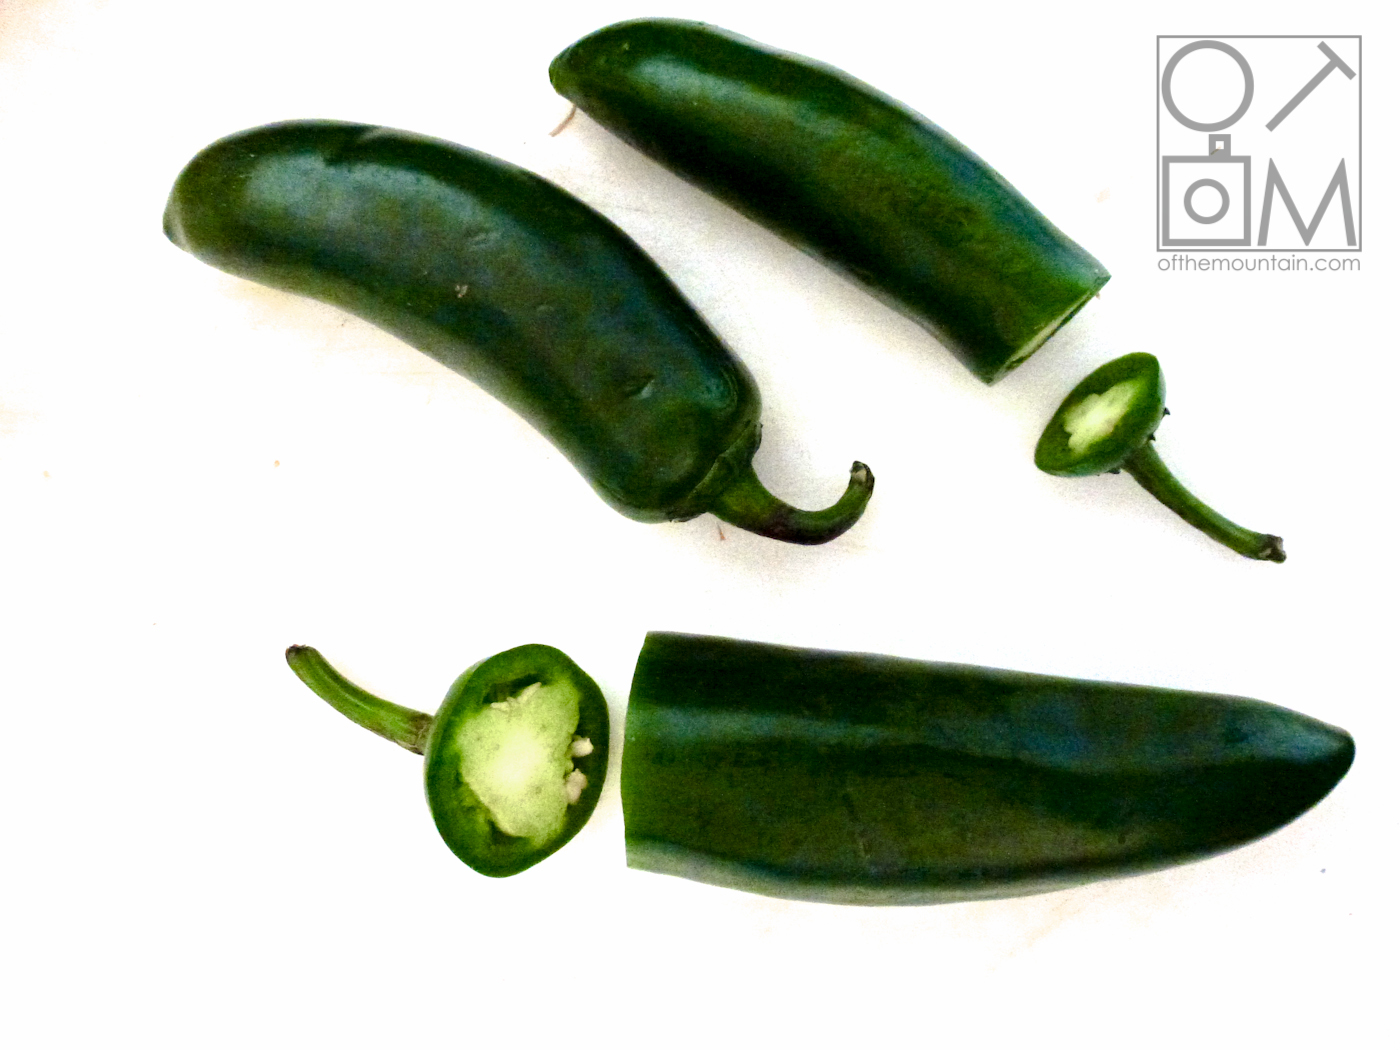 Cooking - Chilis Green